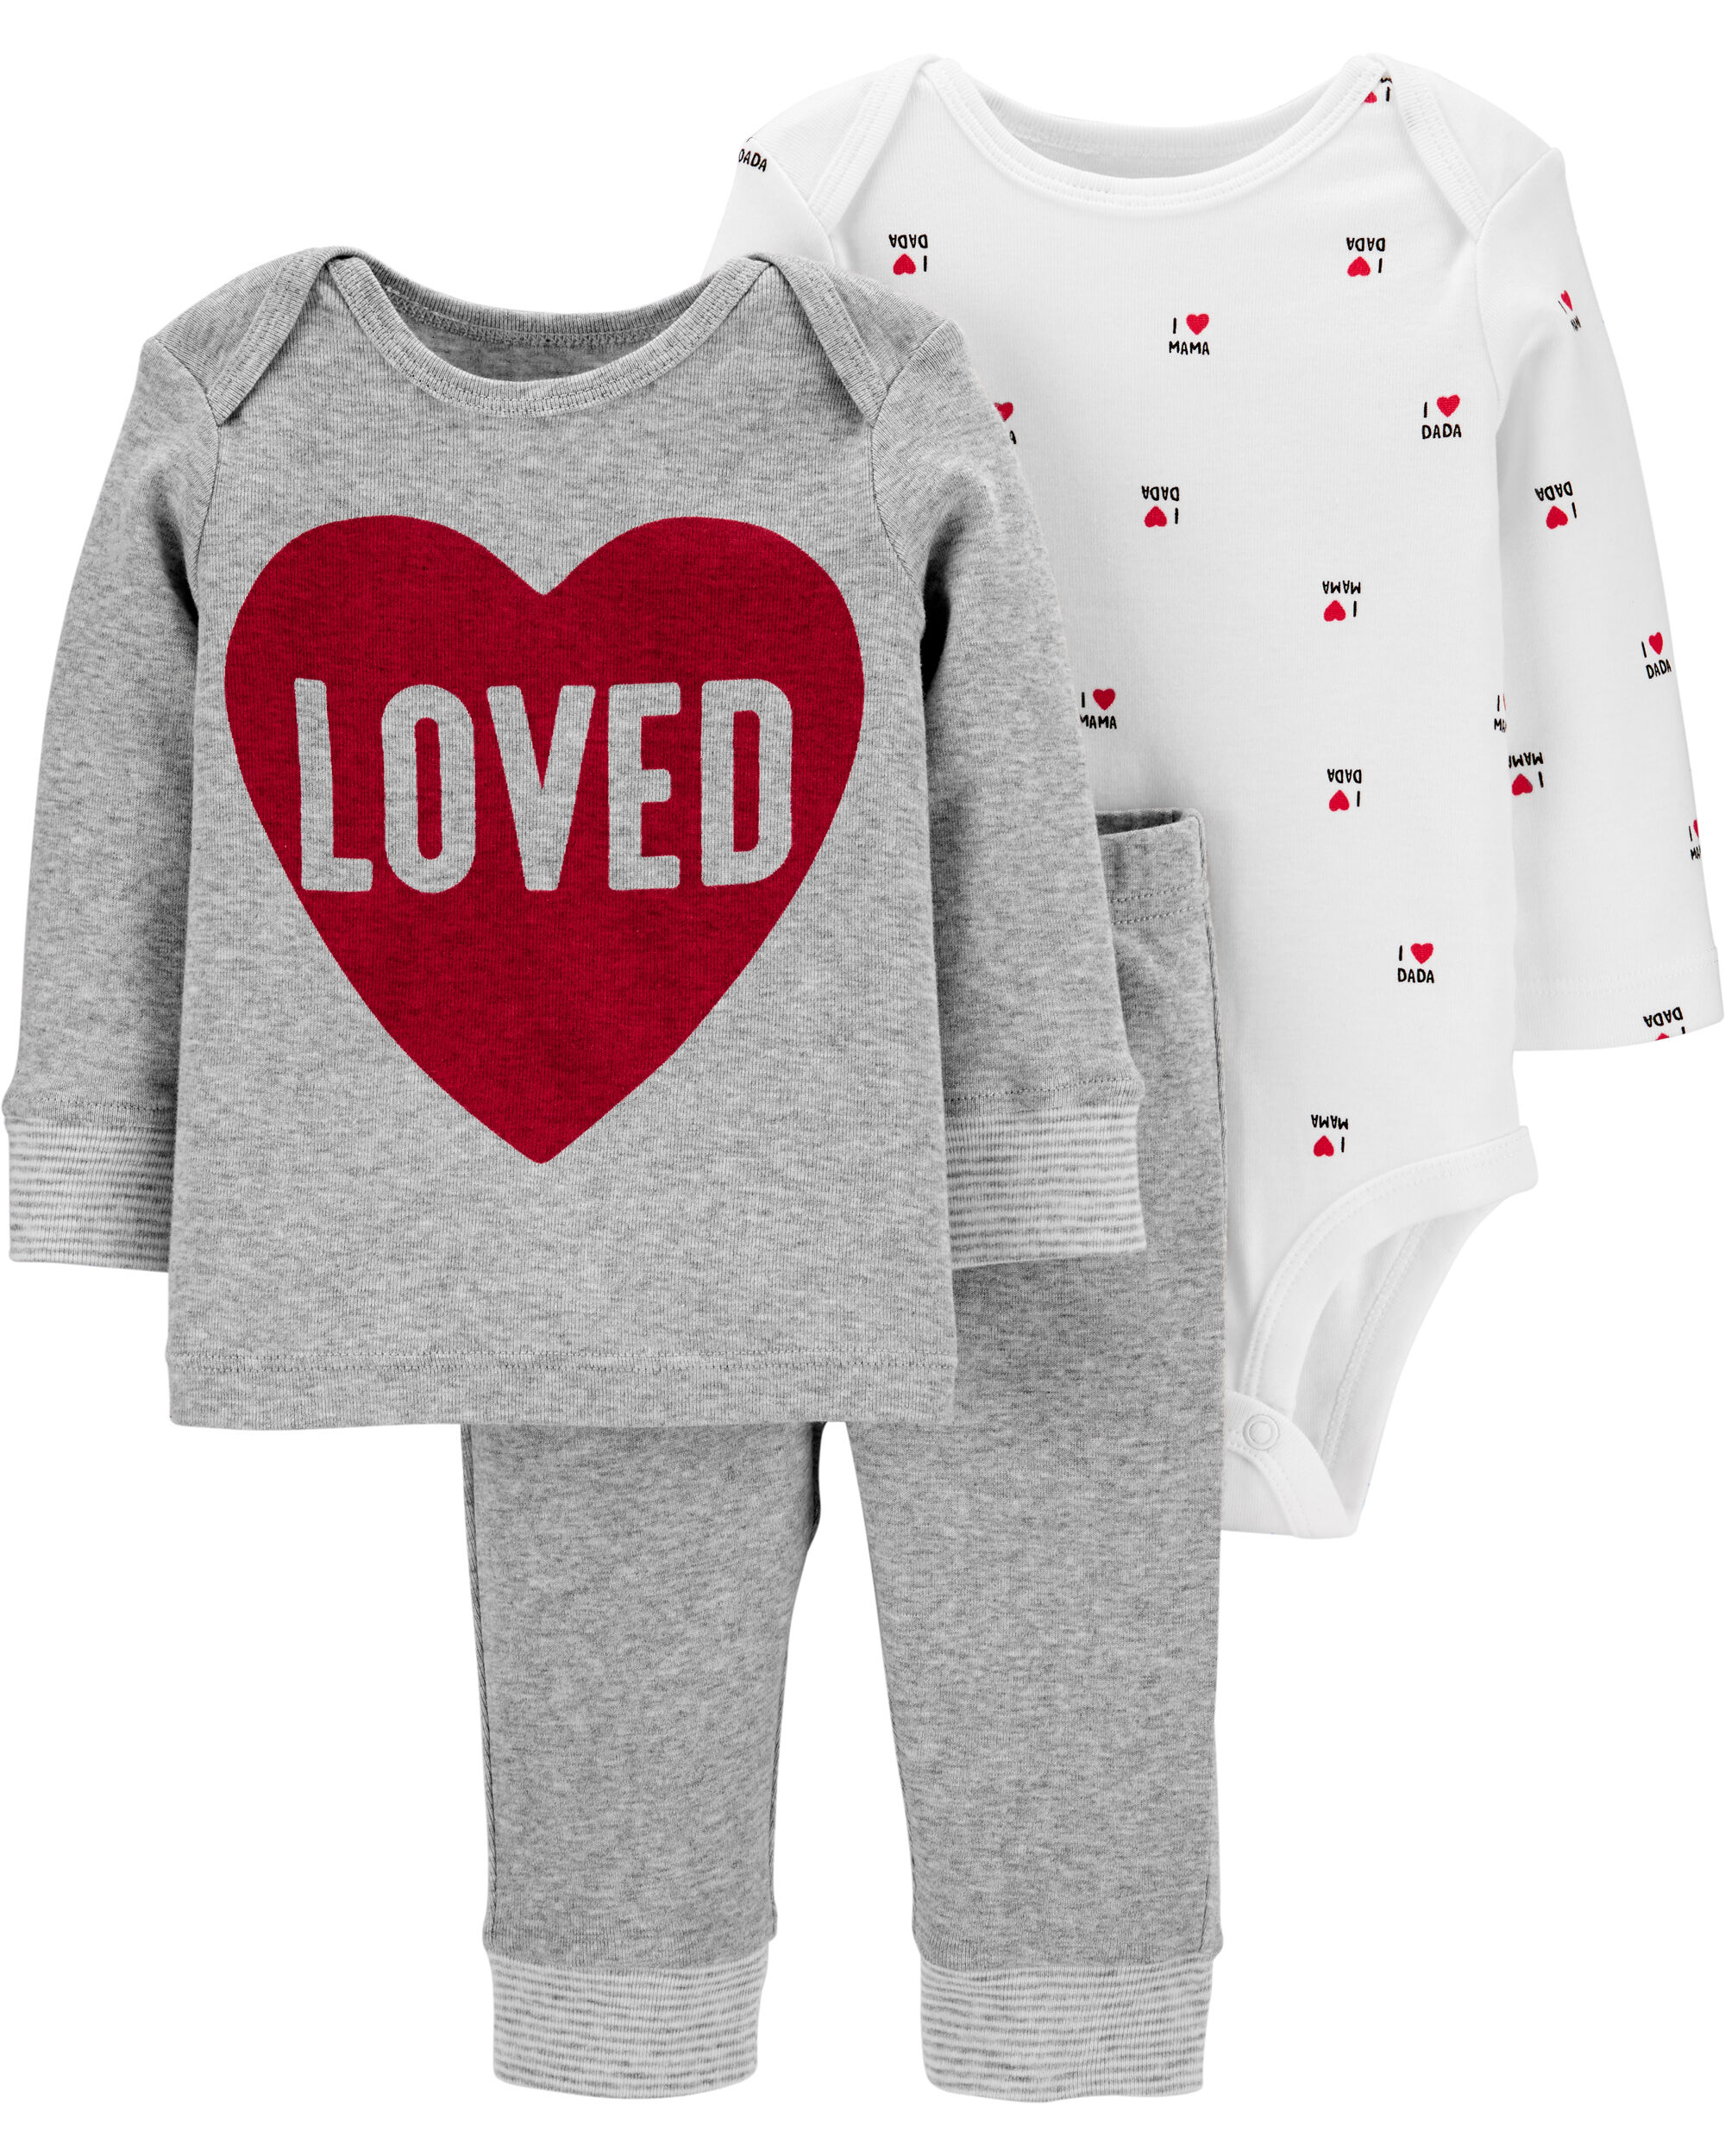 Toddler Baby Girls Valentine/'s Day Heart Print Tops Dress Outfits 4-6Y US STOCK